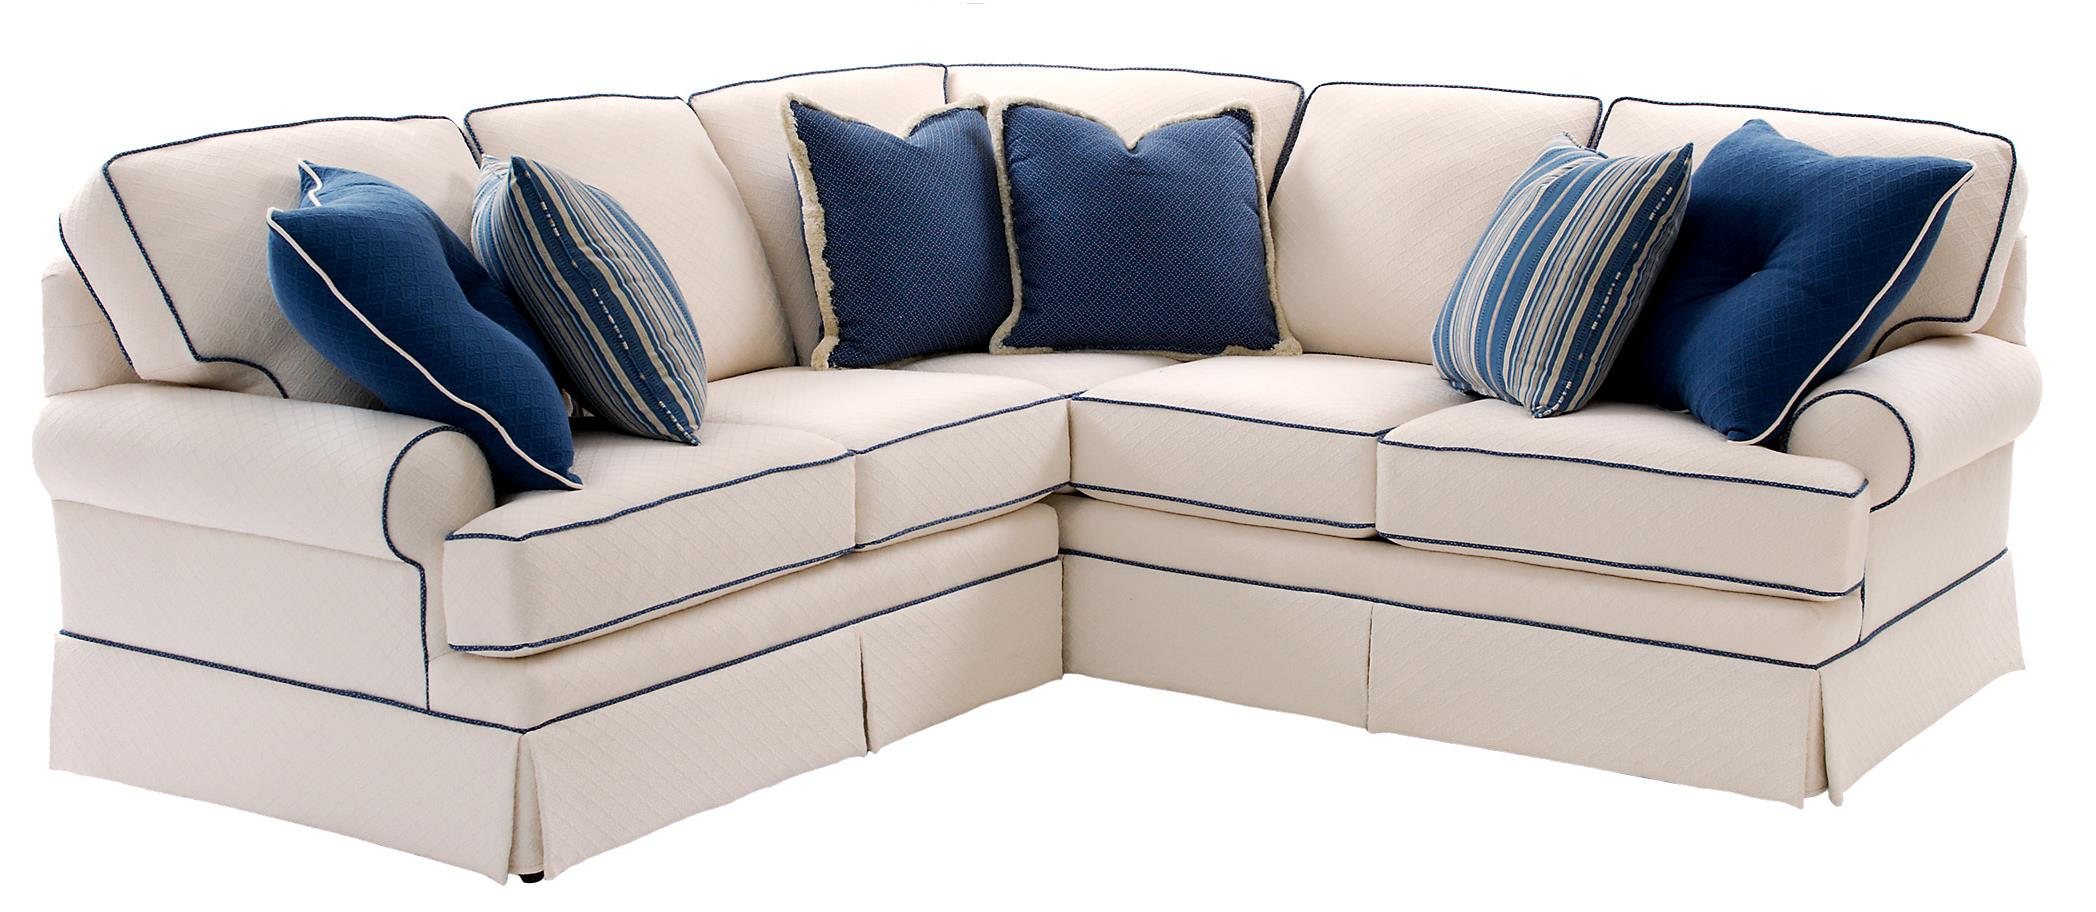 Ordinaire Sectional Sofa With Rolled Arms And Skirt